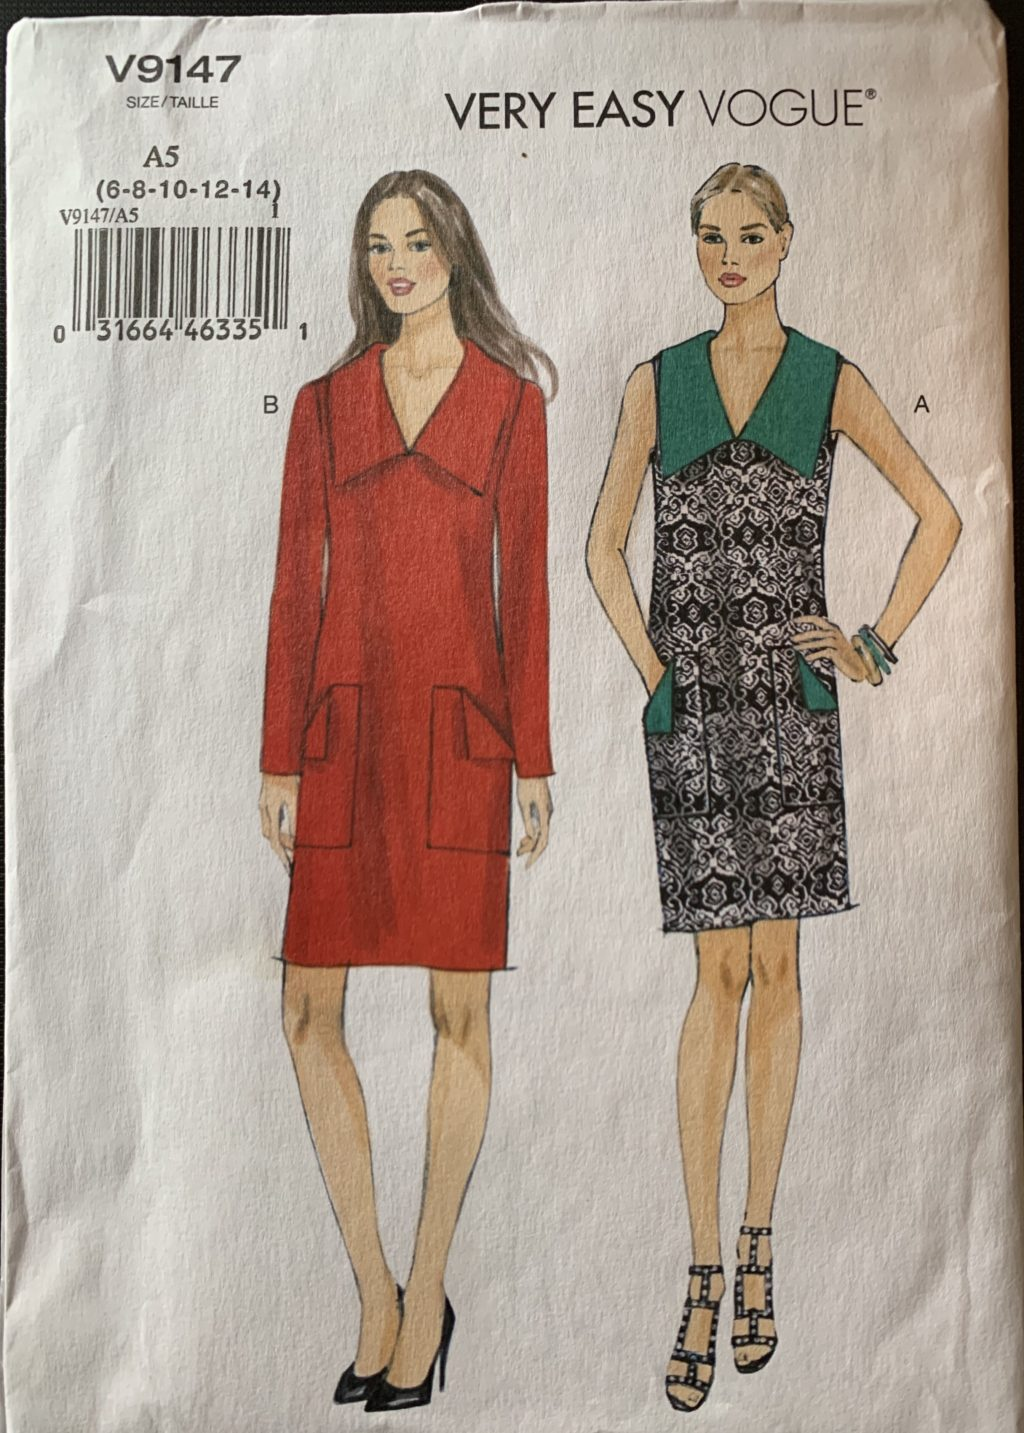 How to read the back of a sewing pattern